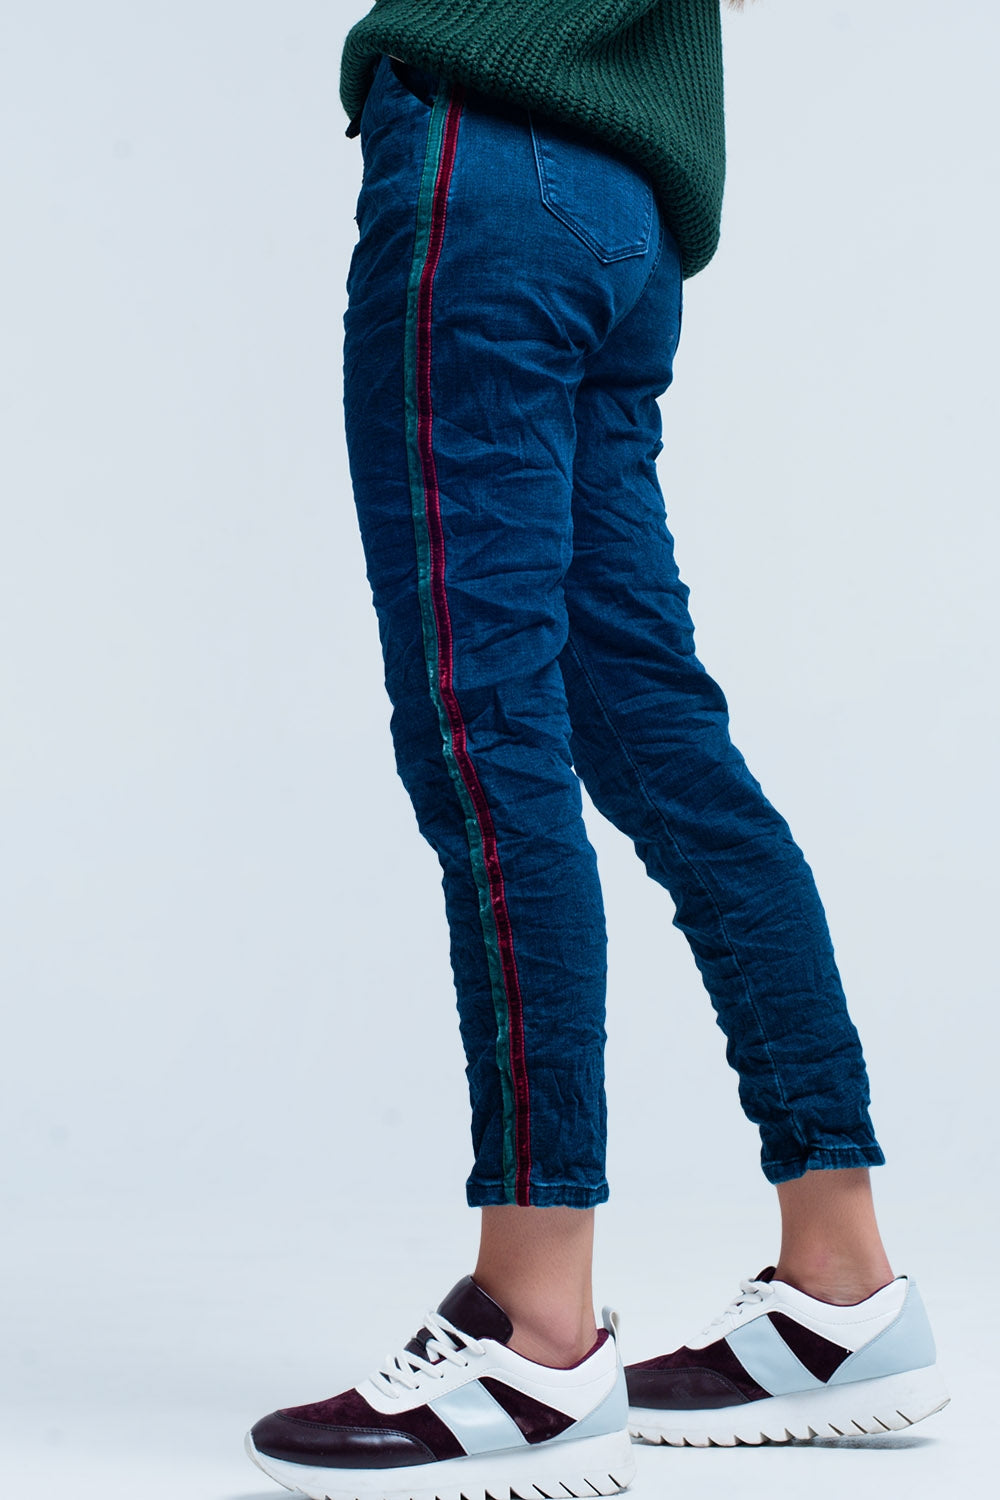 Blue Baggy Jeans multi-color side stripe